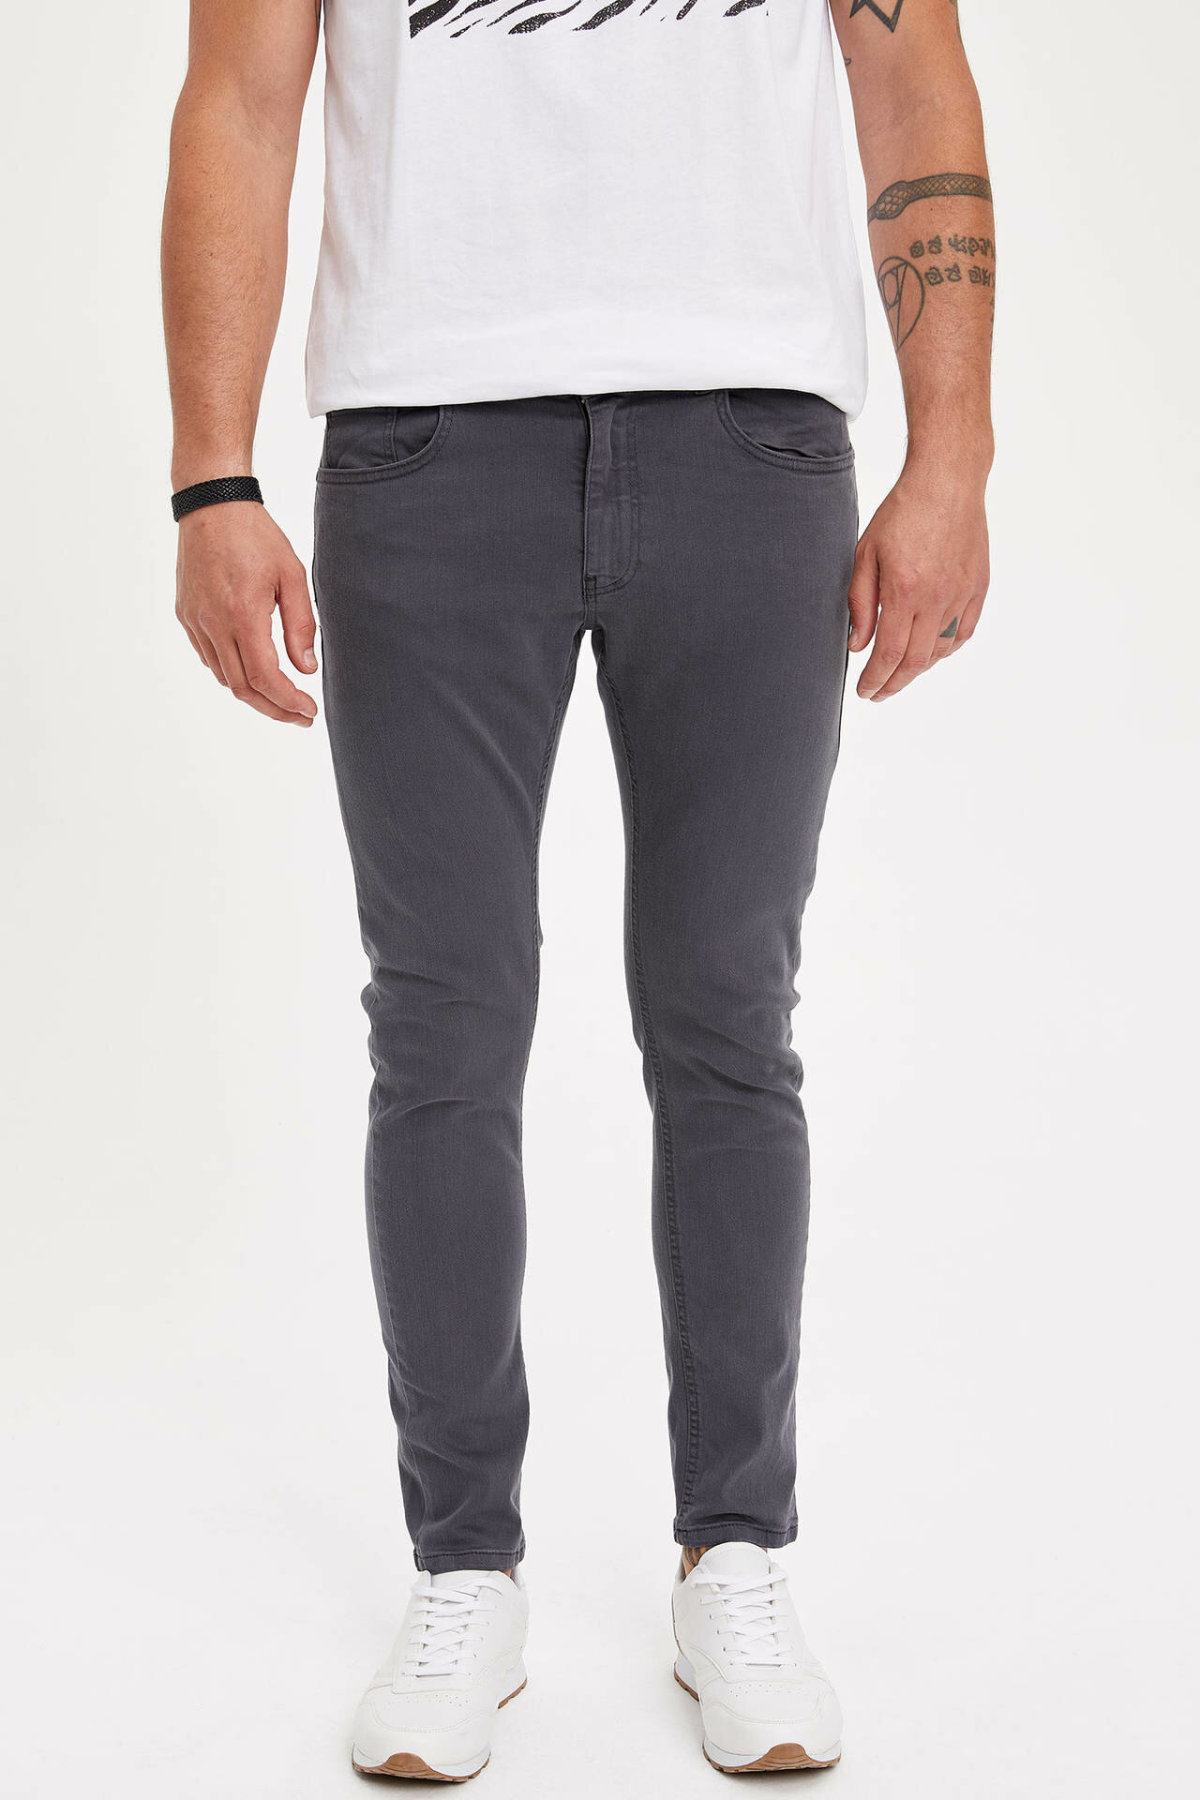 DeFacto Man Summer Casual Dark Grey Denim Jeans Men Slim Fit Denim Bottoms Male Mid-waist Trousers-L8824AZ19SM